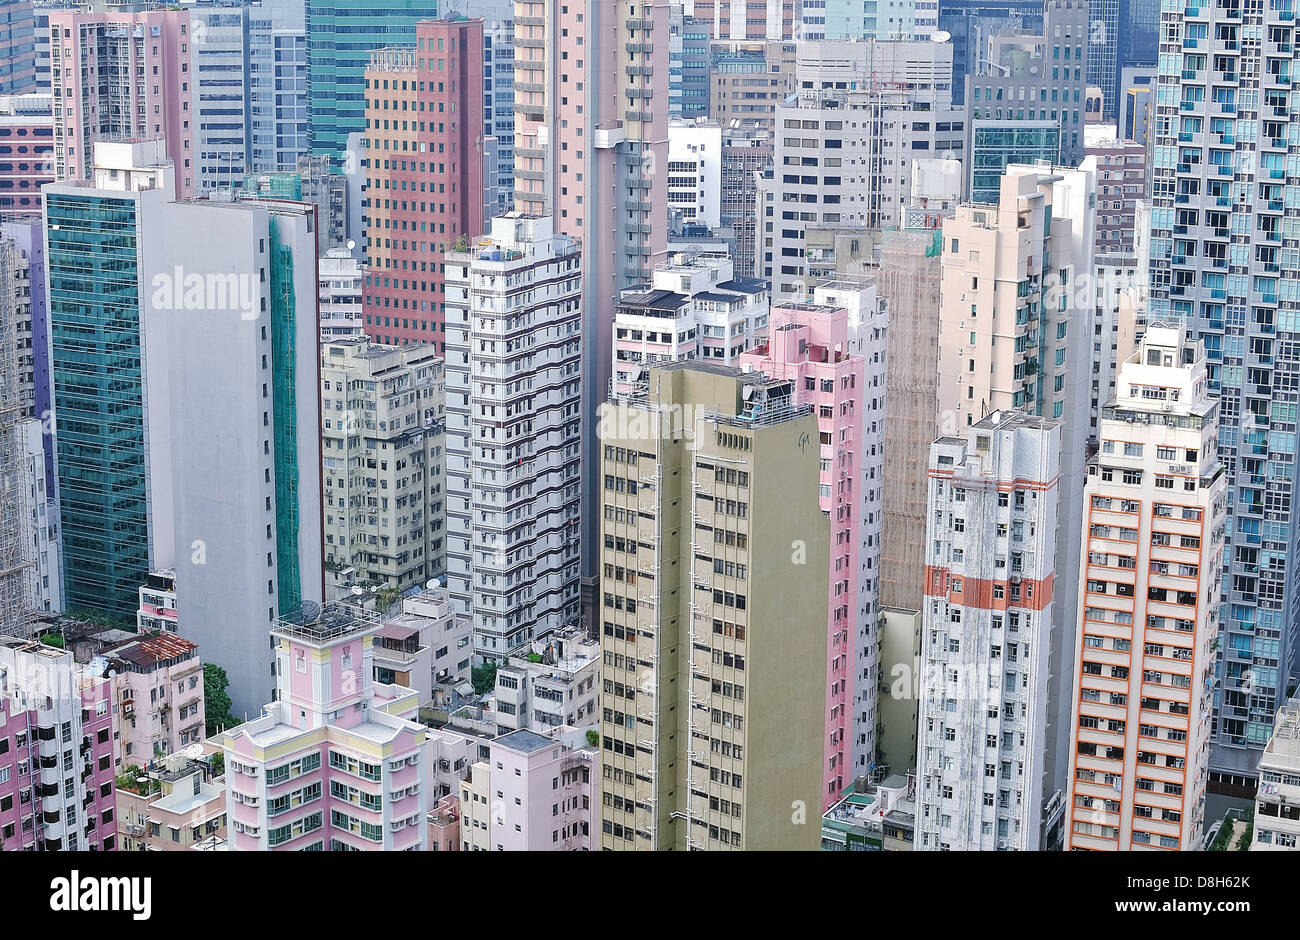 High density skyscrapers in the Wan Chai district of Hong Kong island - Stock Image